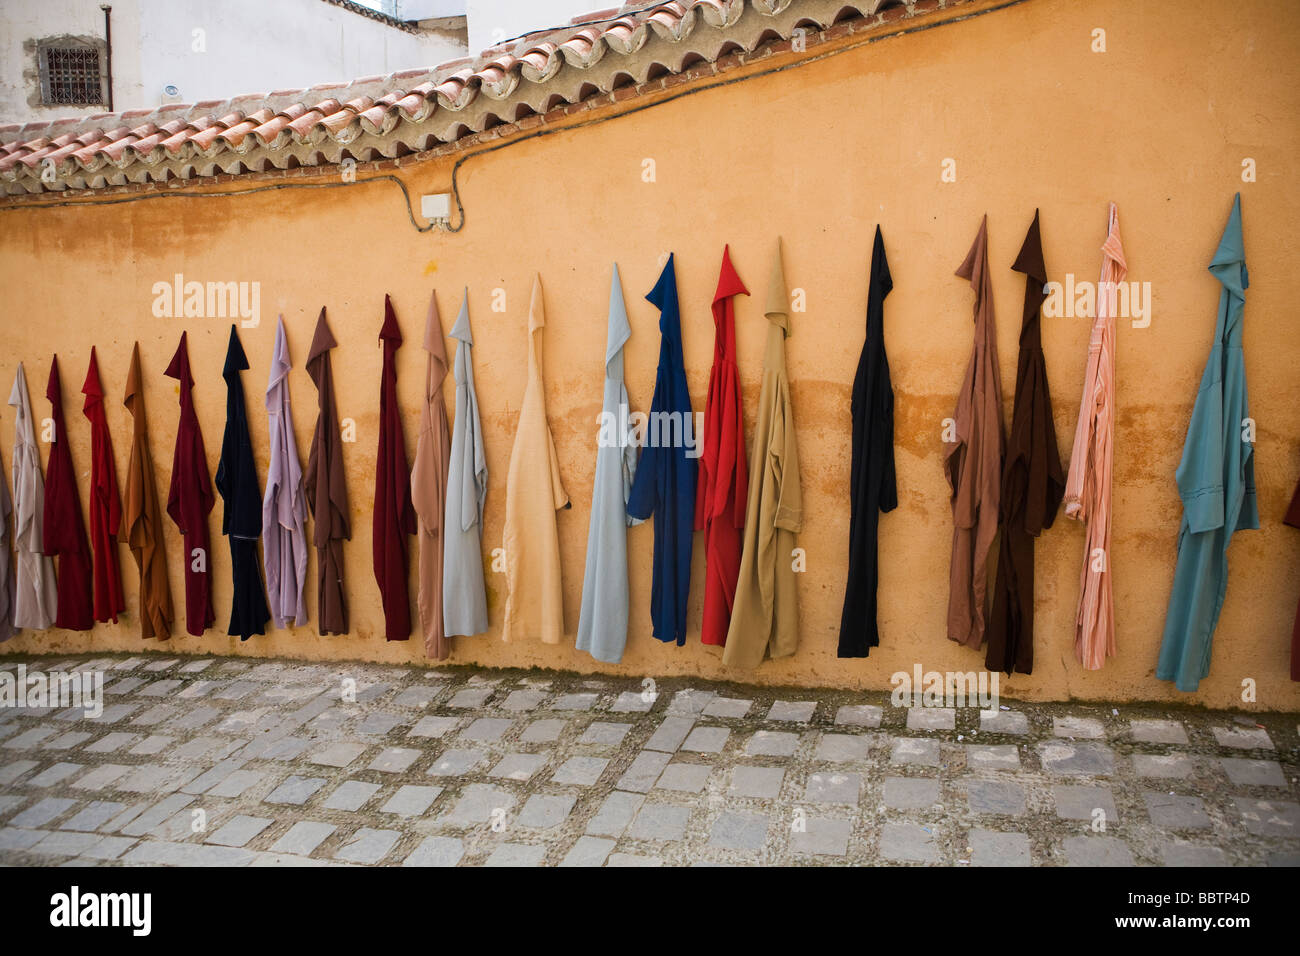 Djellaba Garments Hanging on a Wall, Chefchaouen, Morocco, North Africa - Stock Image